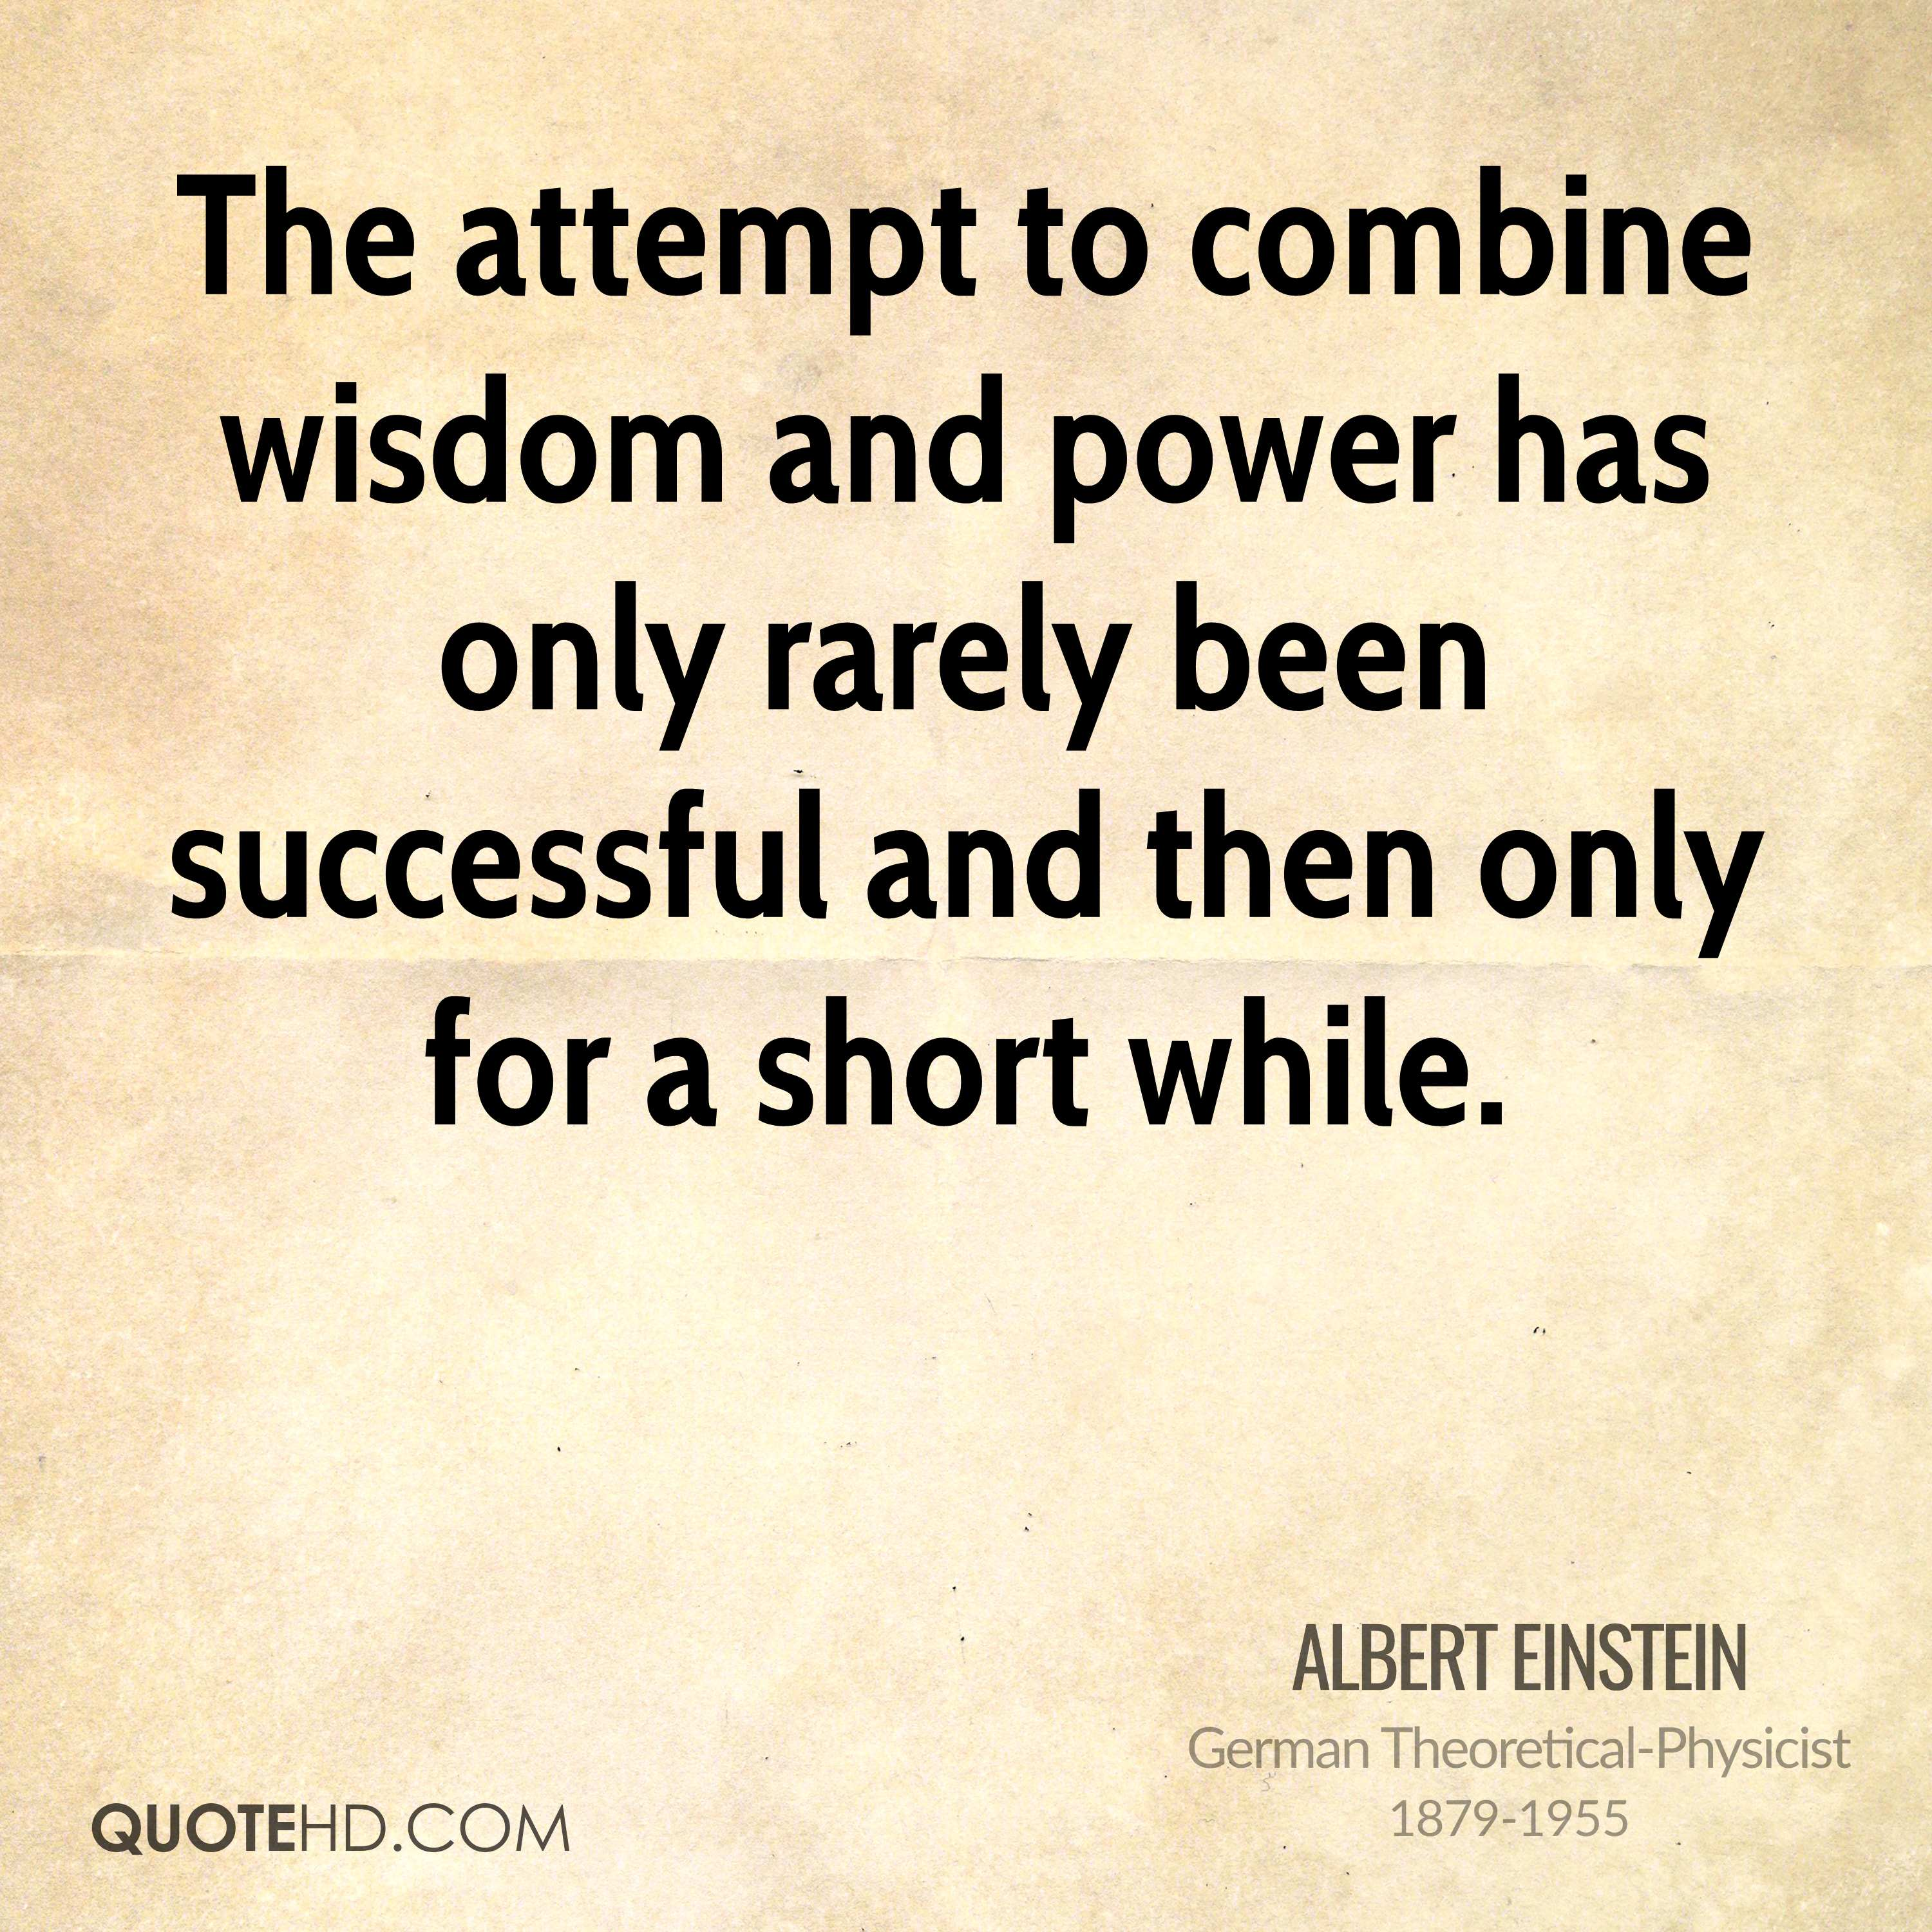 The attempt to combine wisdom and power has only rarely been successful and then only for a short while.